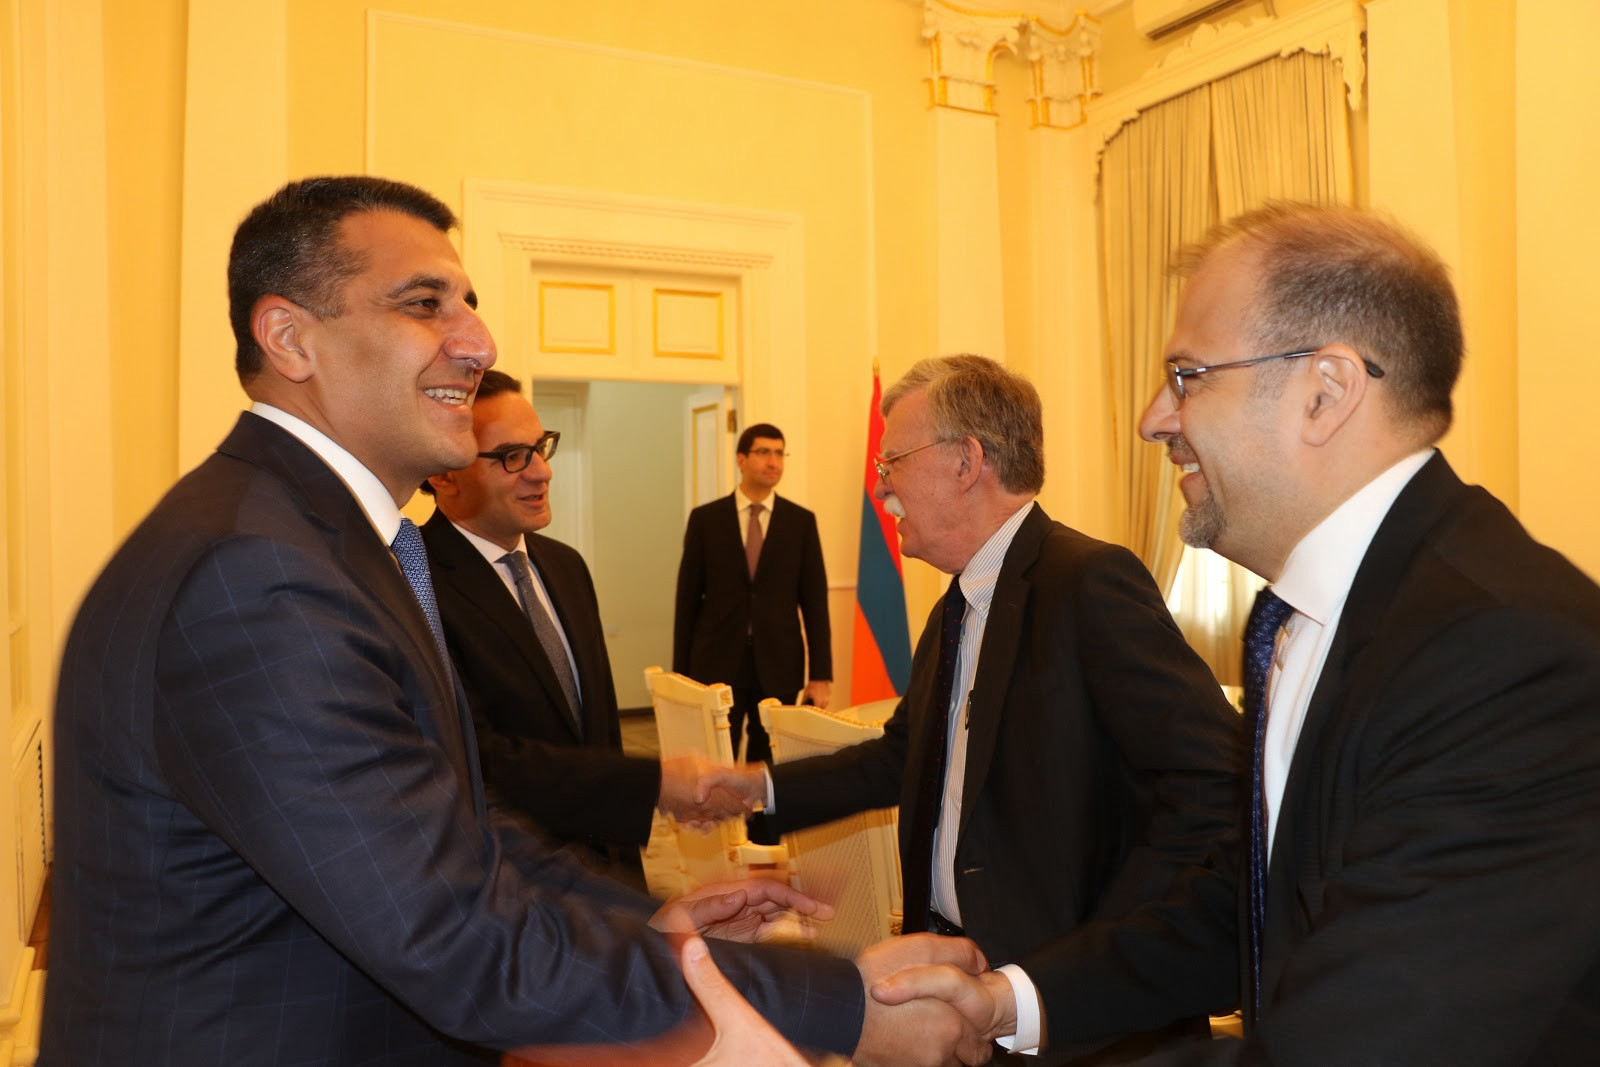 Embassy Yerevan's Chargé d'Affaires Rafik Mansour greets newly appointed Armenian Ambassador to the U.S. Varuzhan Nersesyan during National Security Advisor John Bolton's recent visit to Armenia.